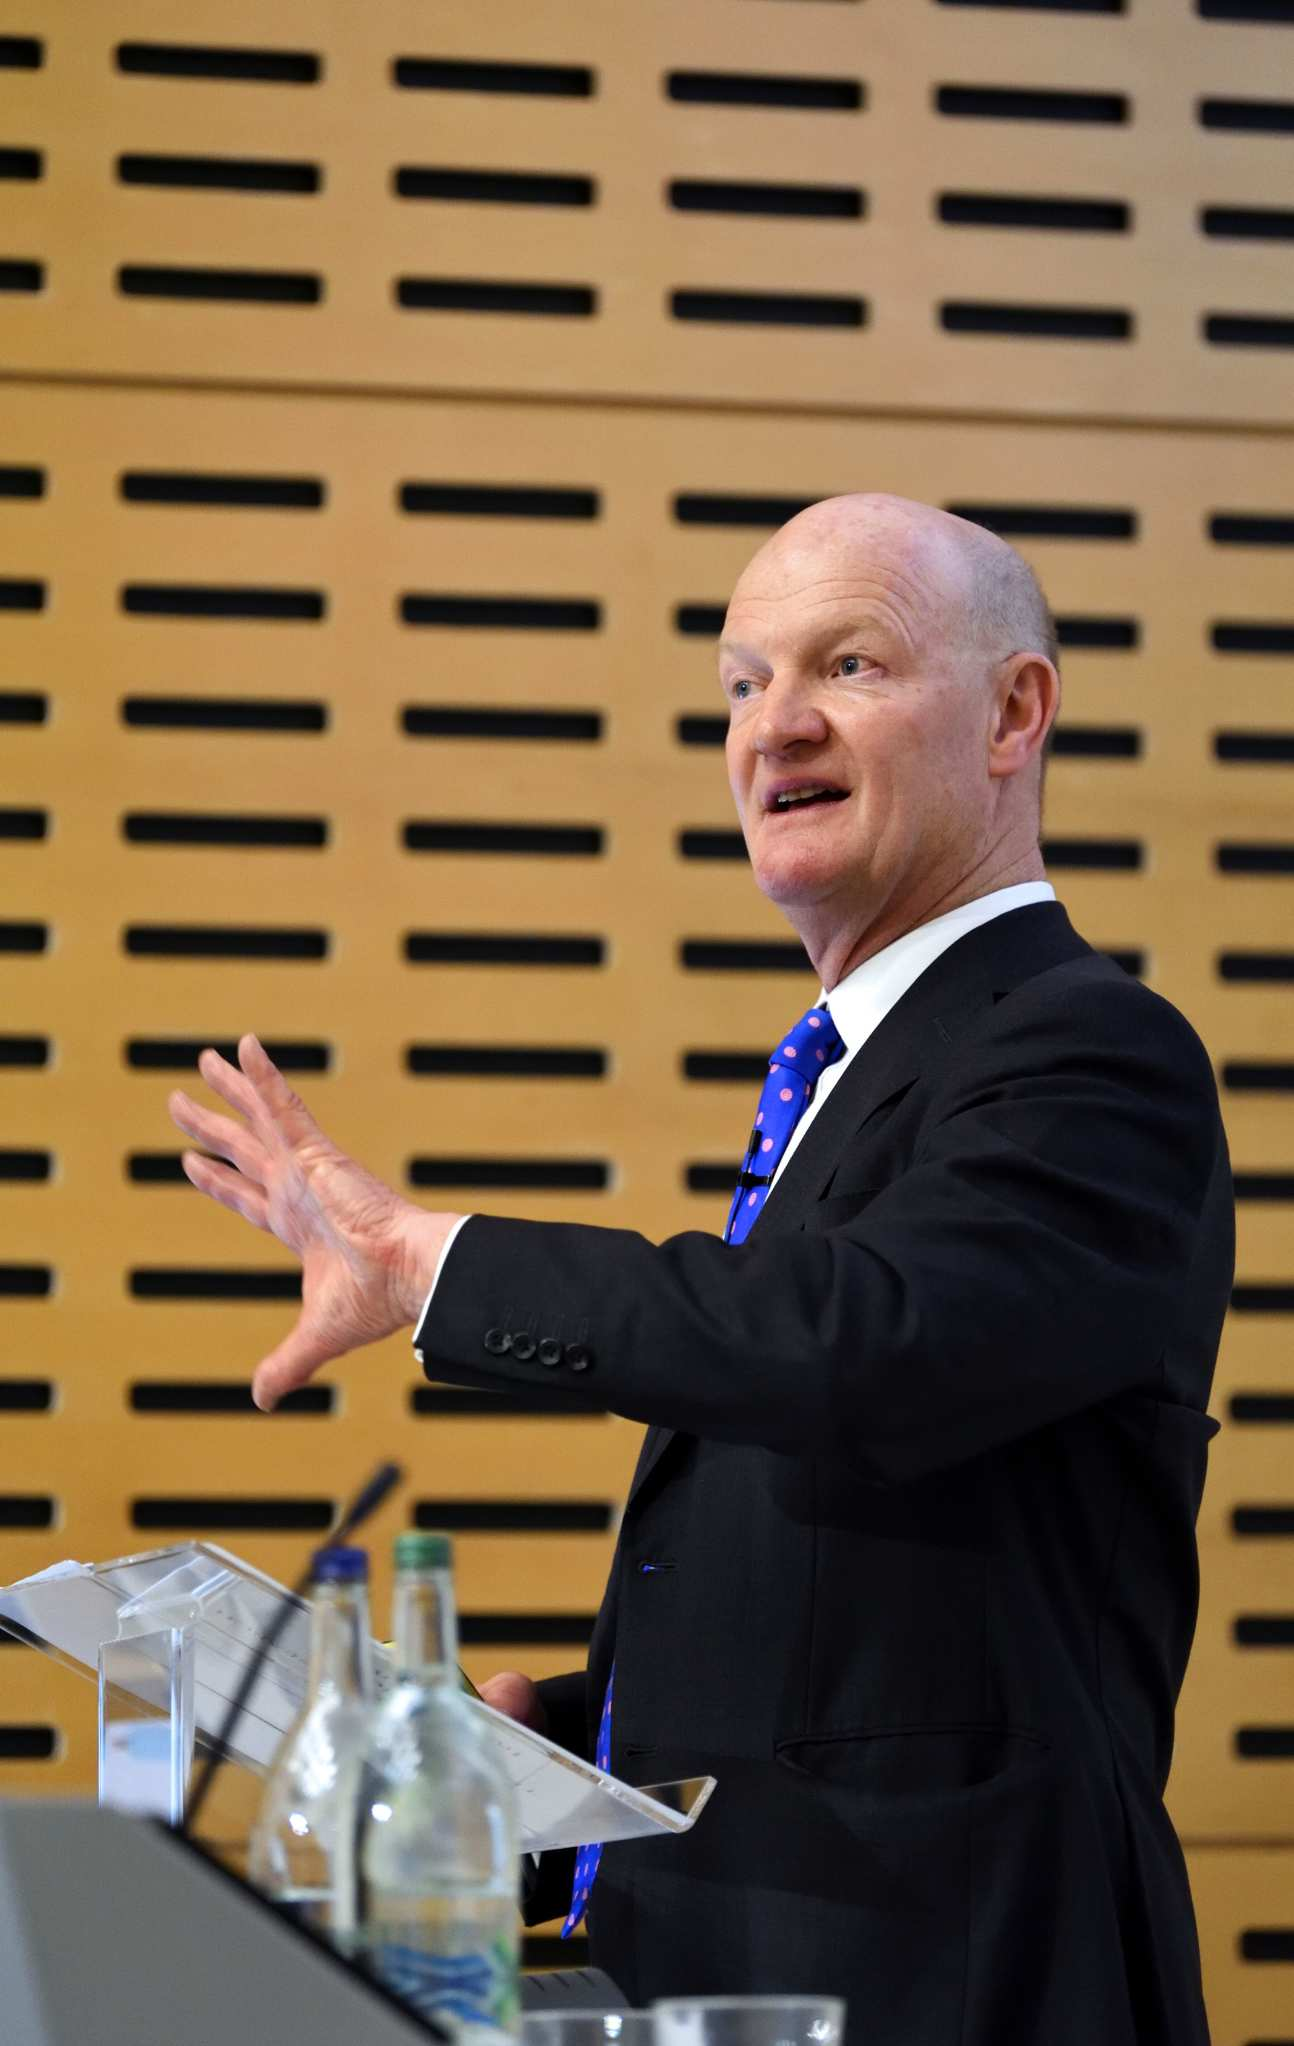 Lord David Willetts speaking at the lecture